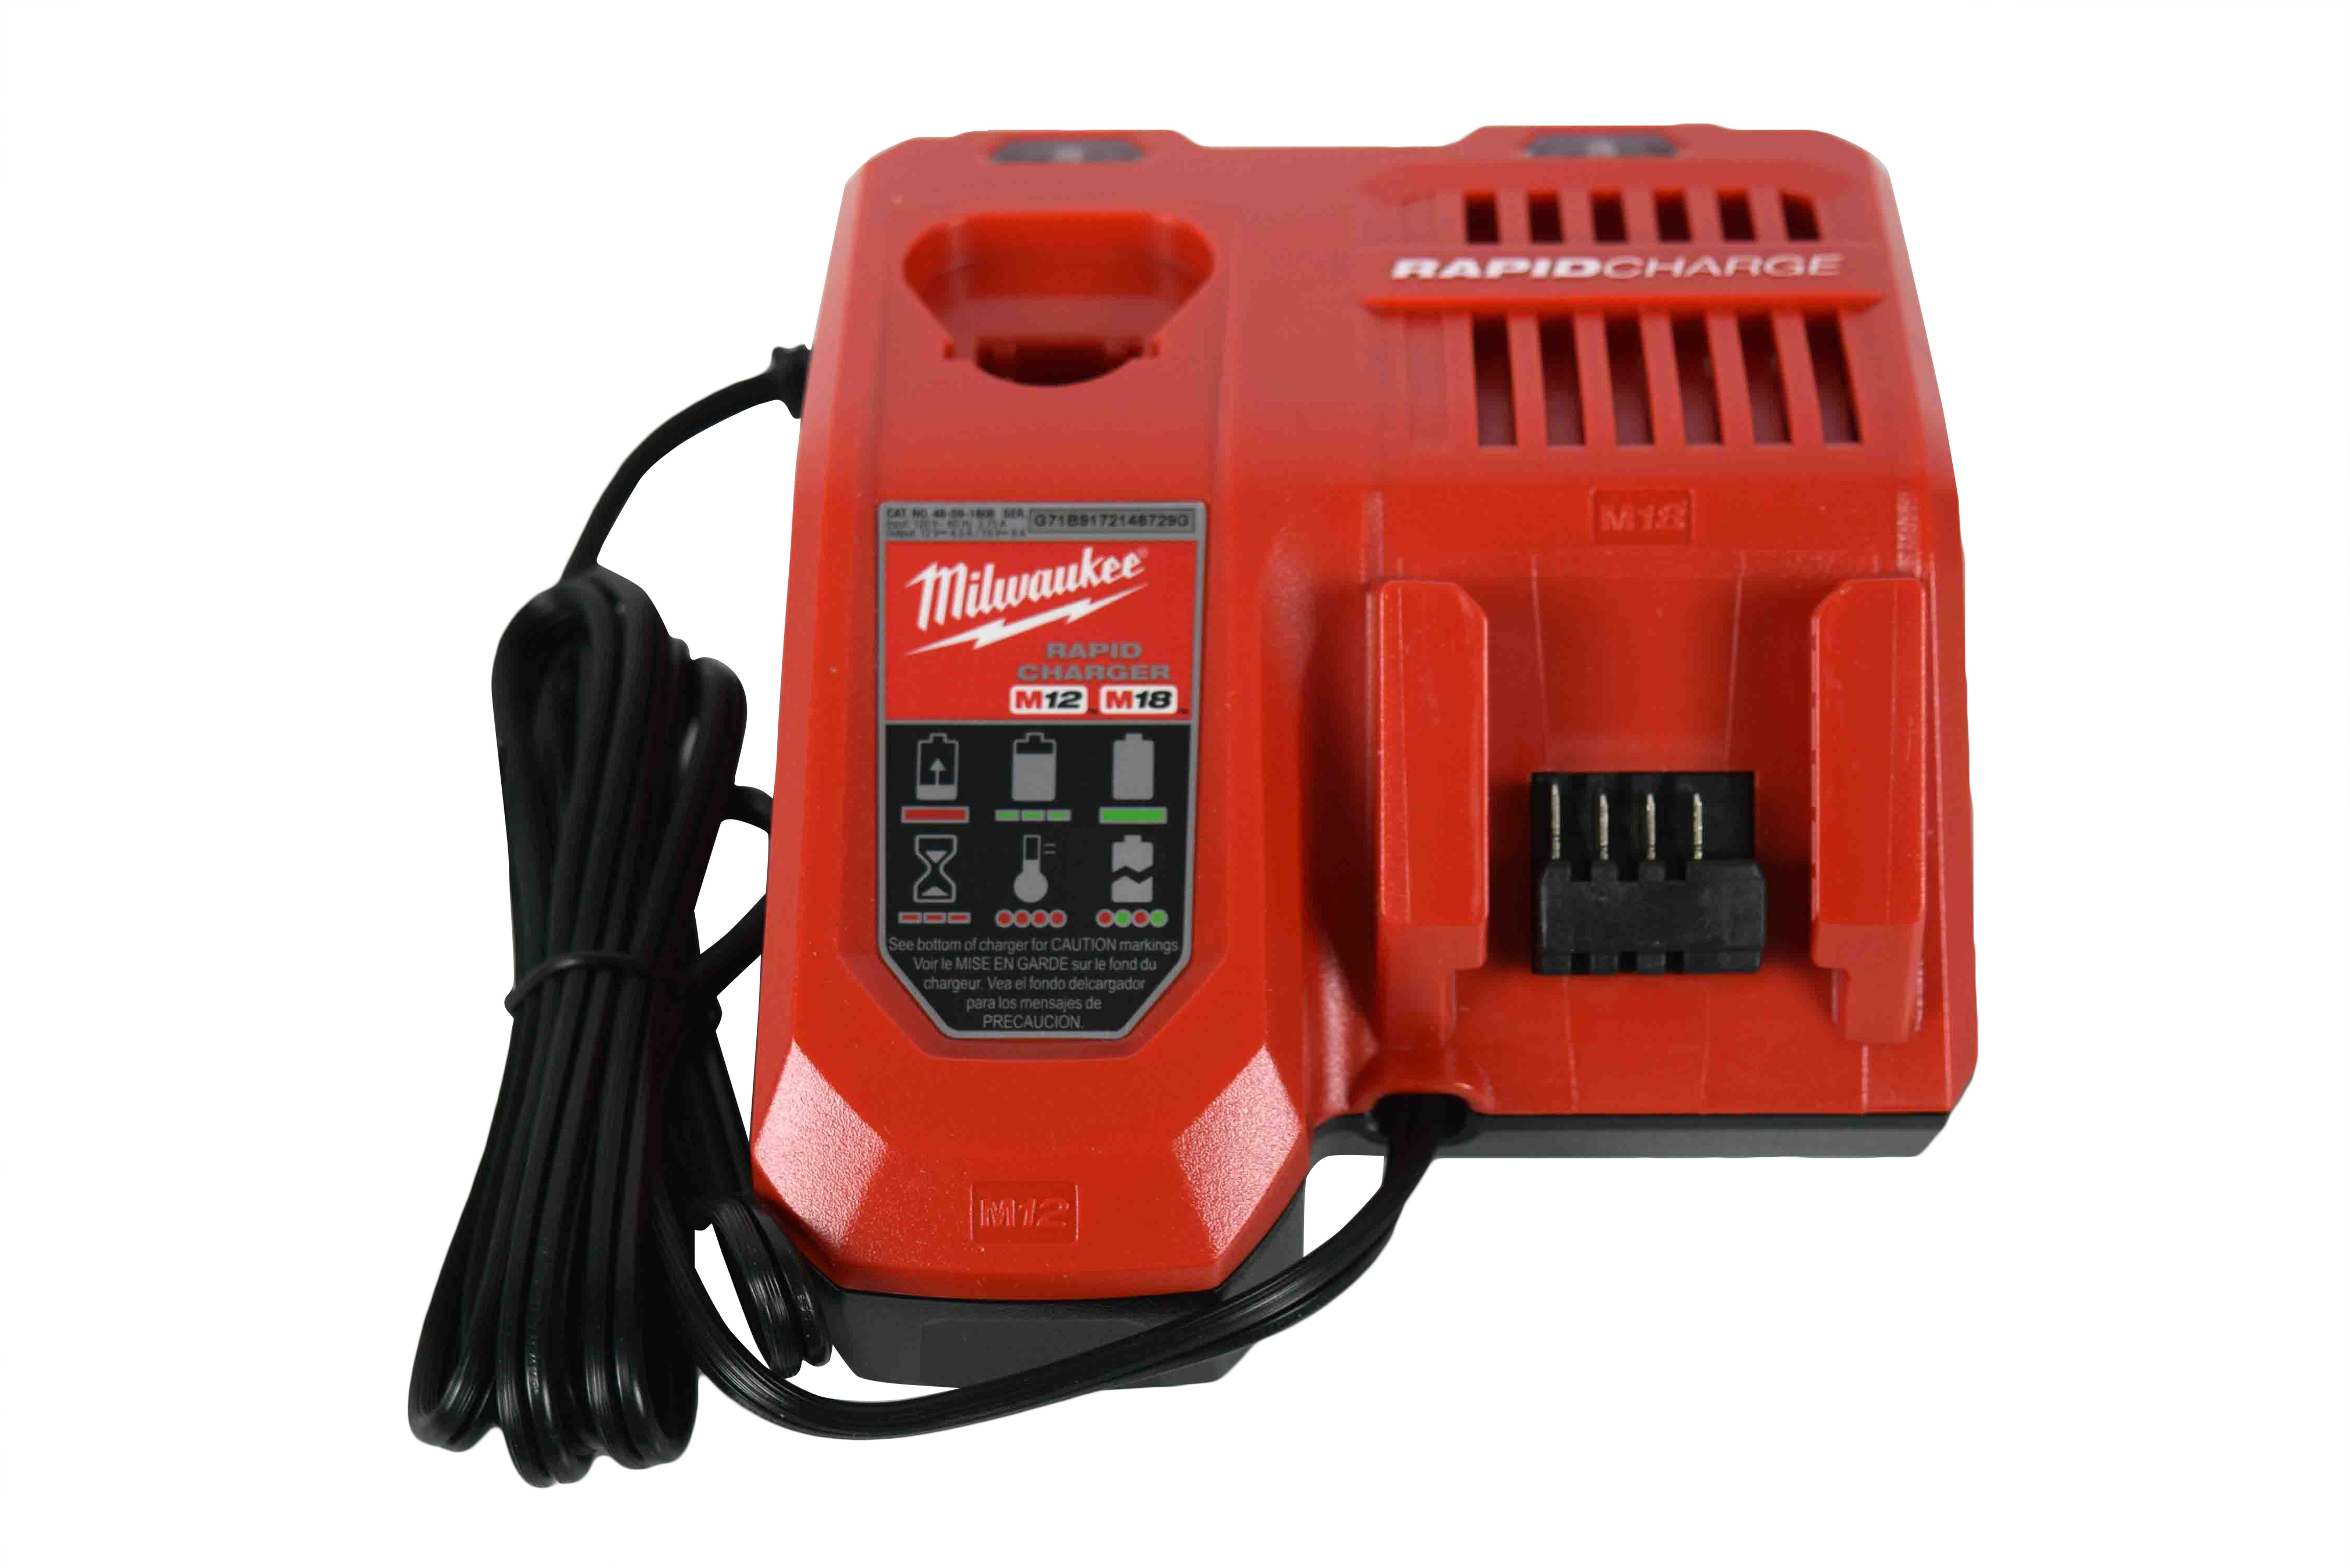 Milwaukee-48-59-1808-M18-M12-Lithium-Ion-Battery-Rapid-Charger-image-5